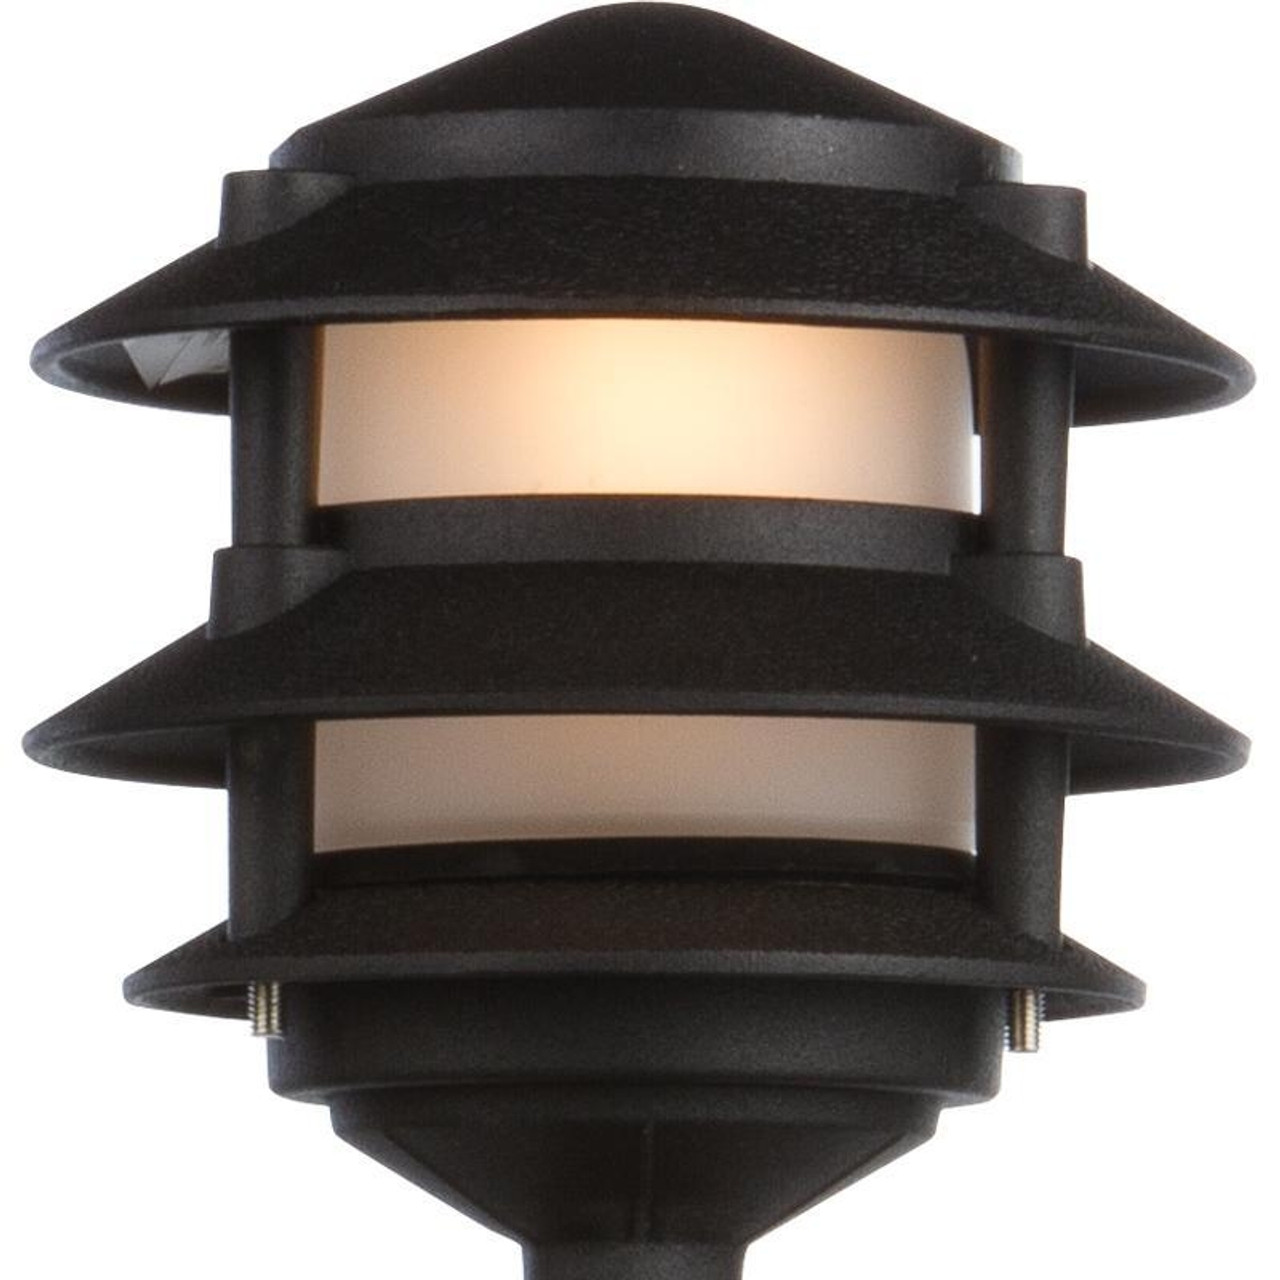 Led garden landscape lights for Quality landscape lighting